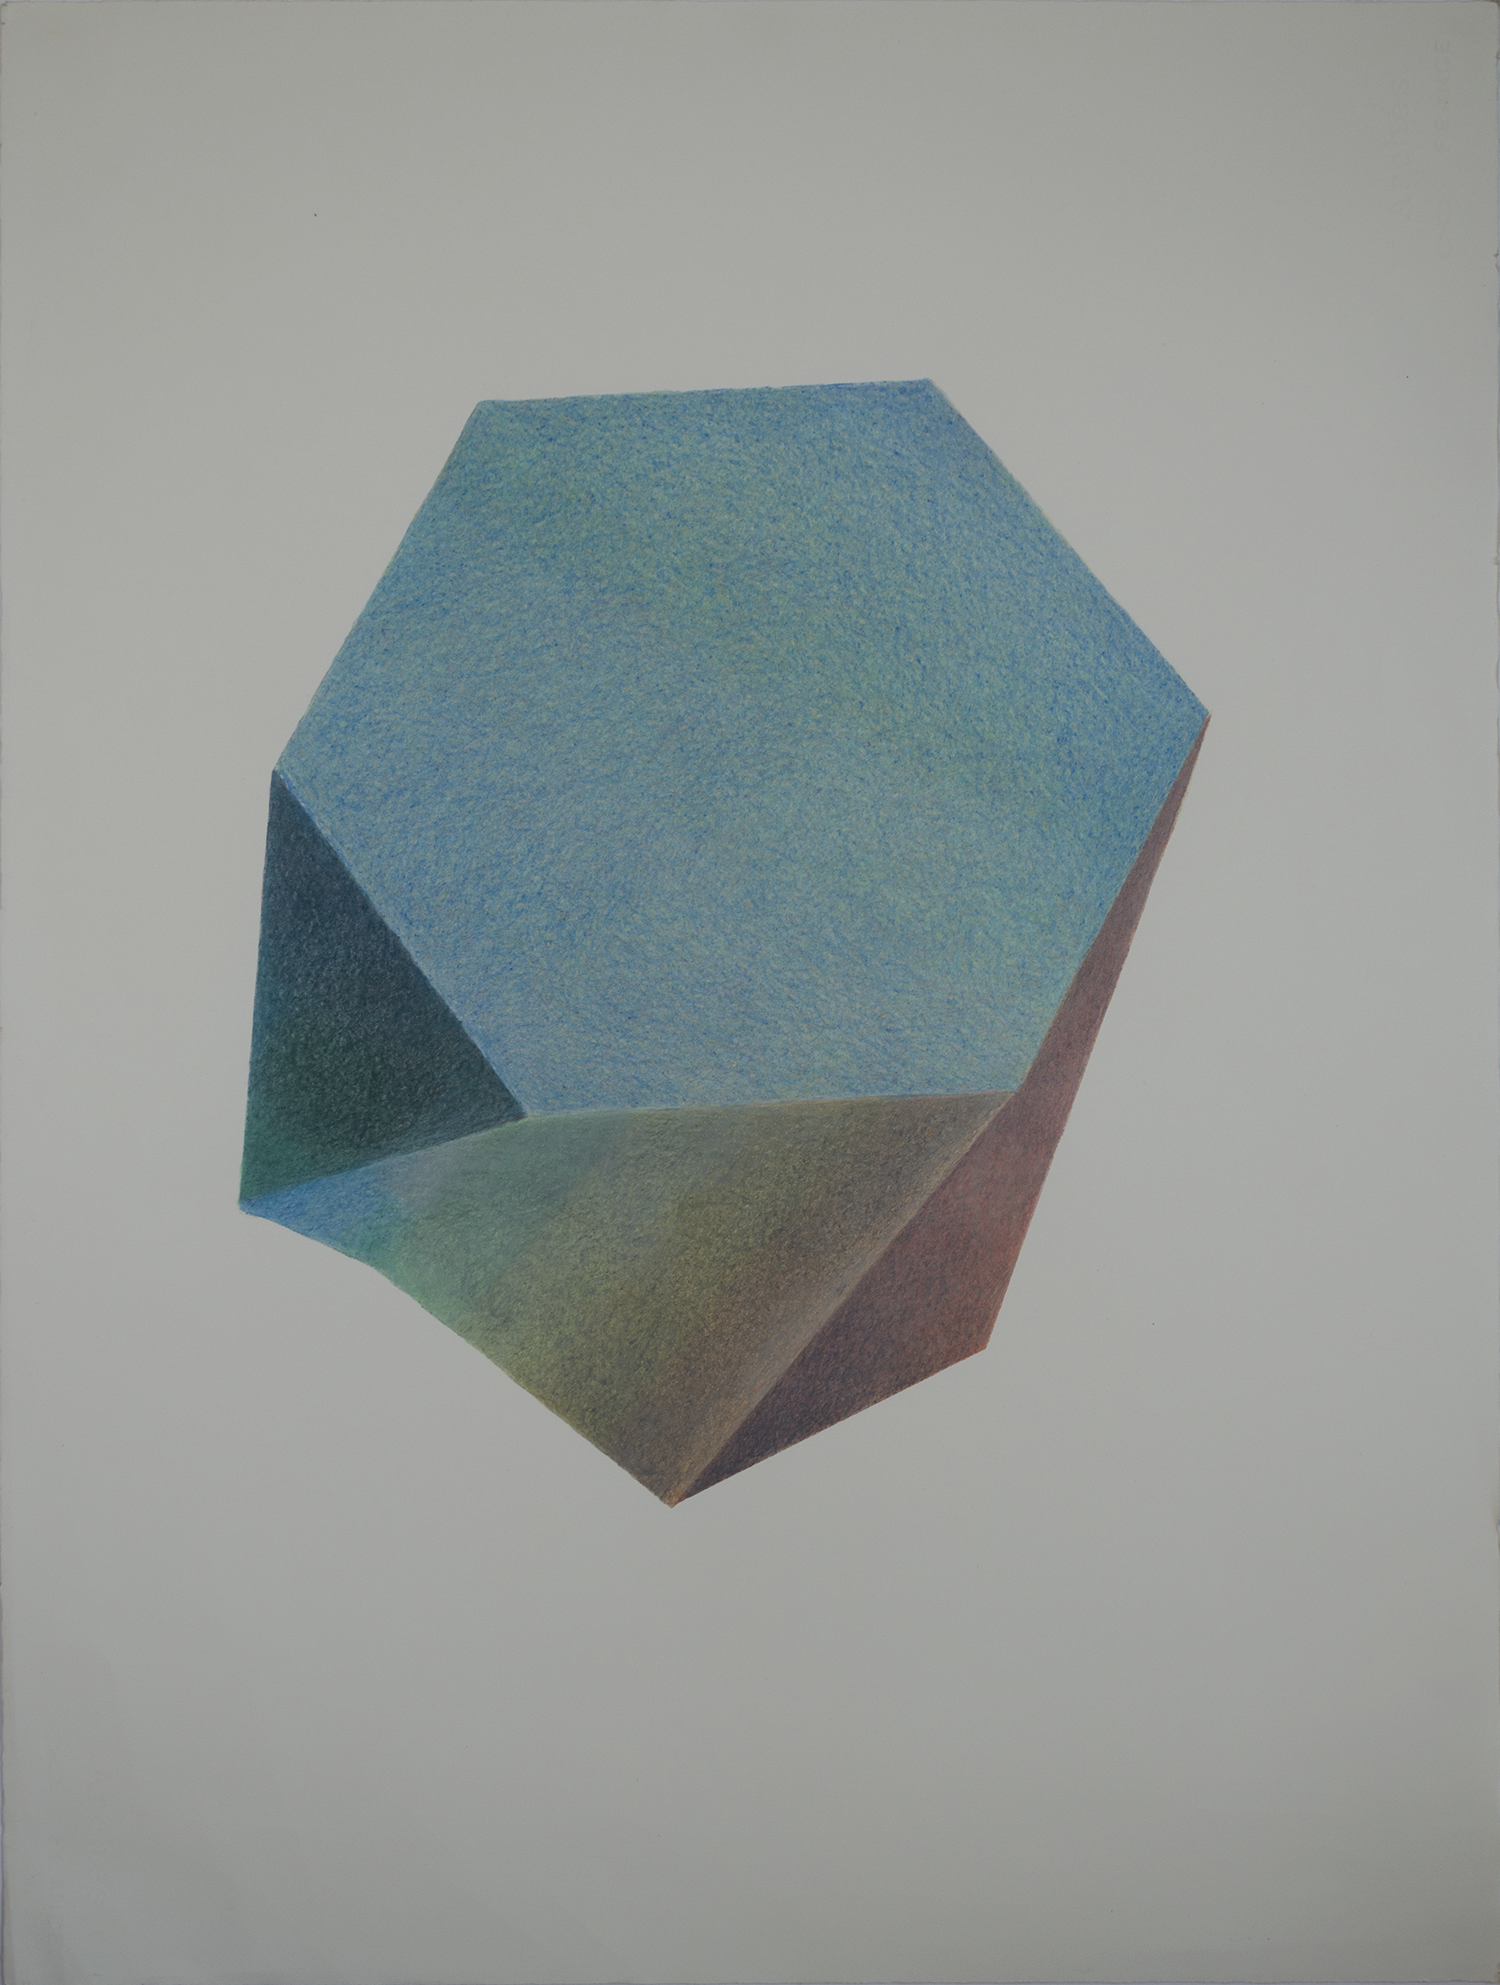 "INSPIRED BY THE SCUTOID © 2019 COLORED PENCIL ON COTTON PAPER 22.5"" (W) X 30"" (H)"